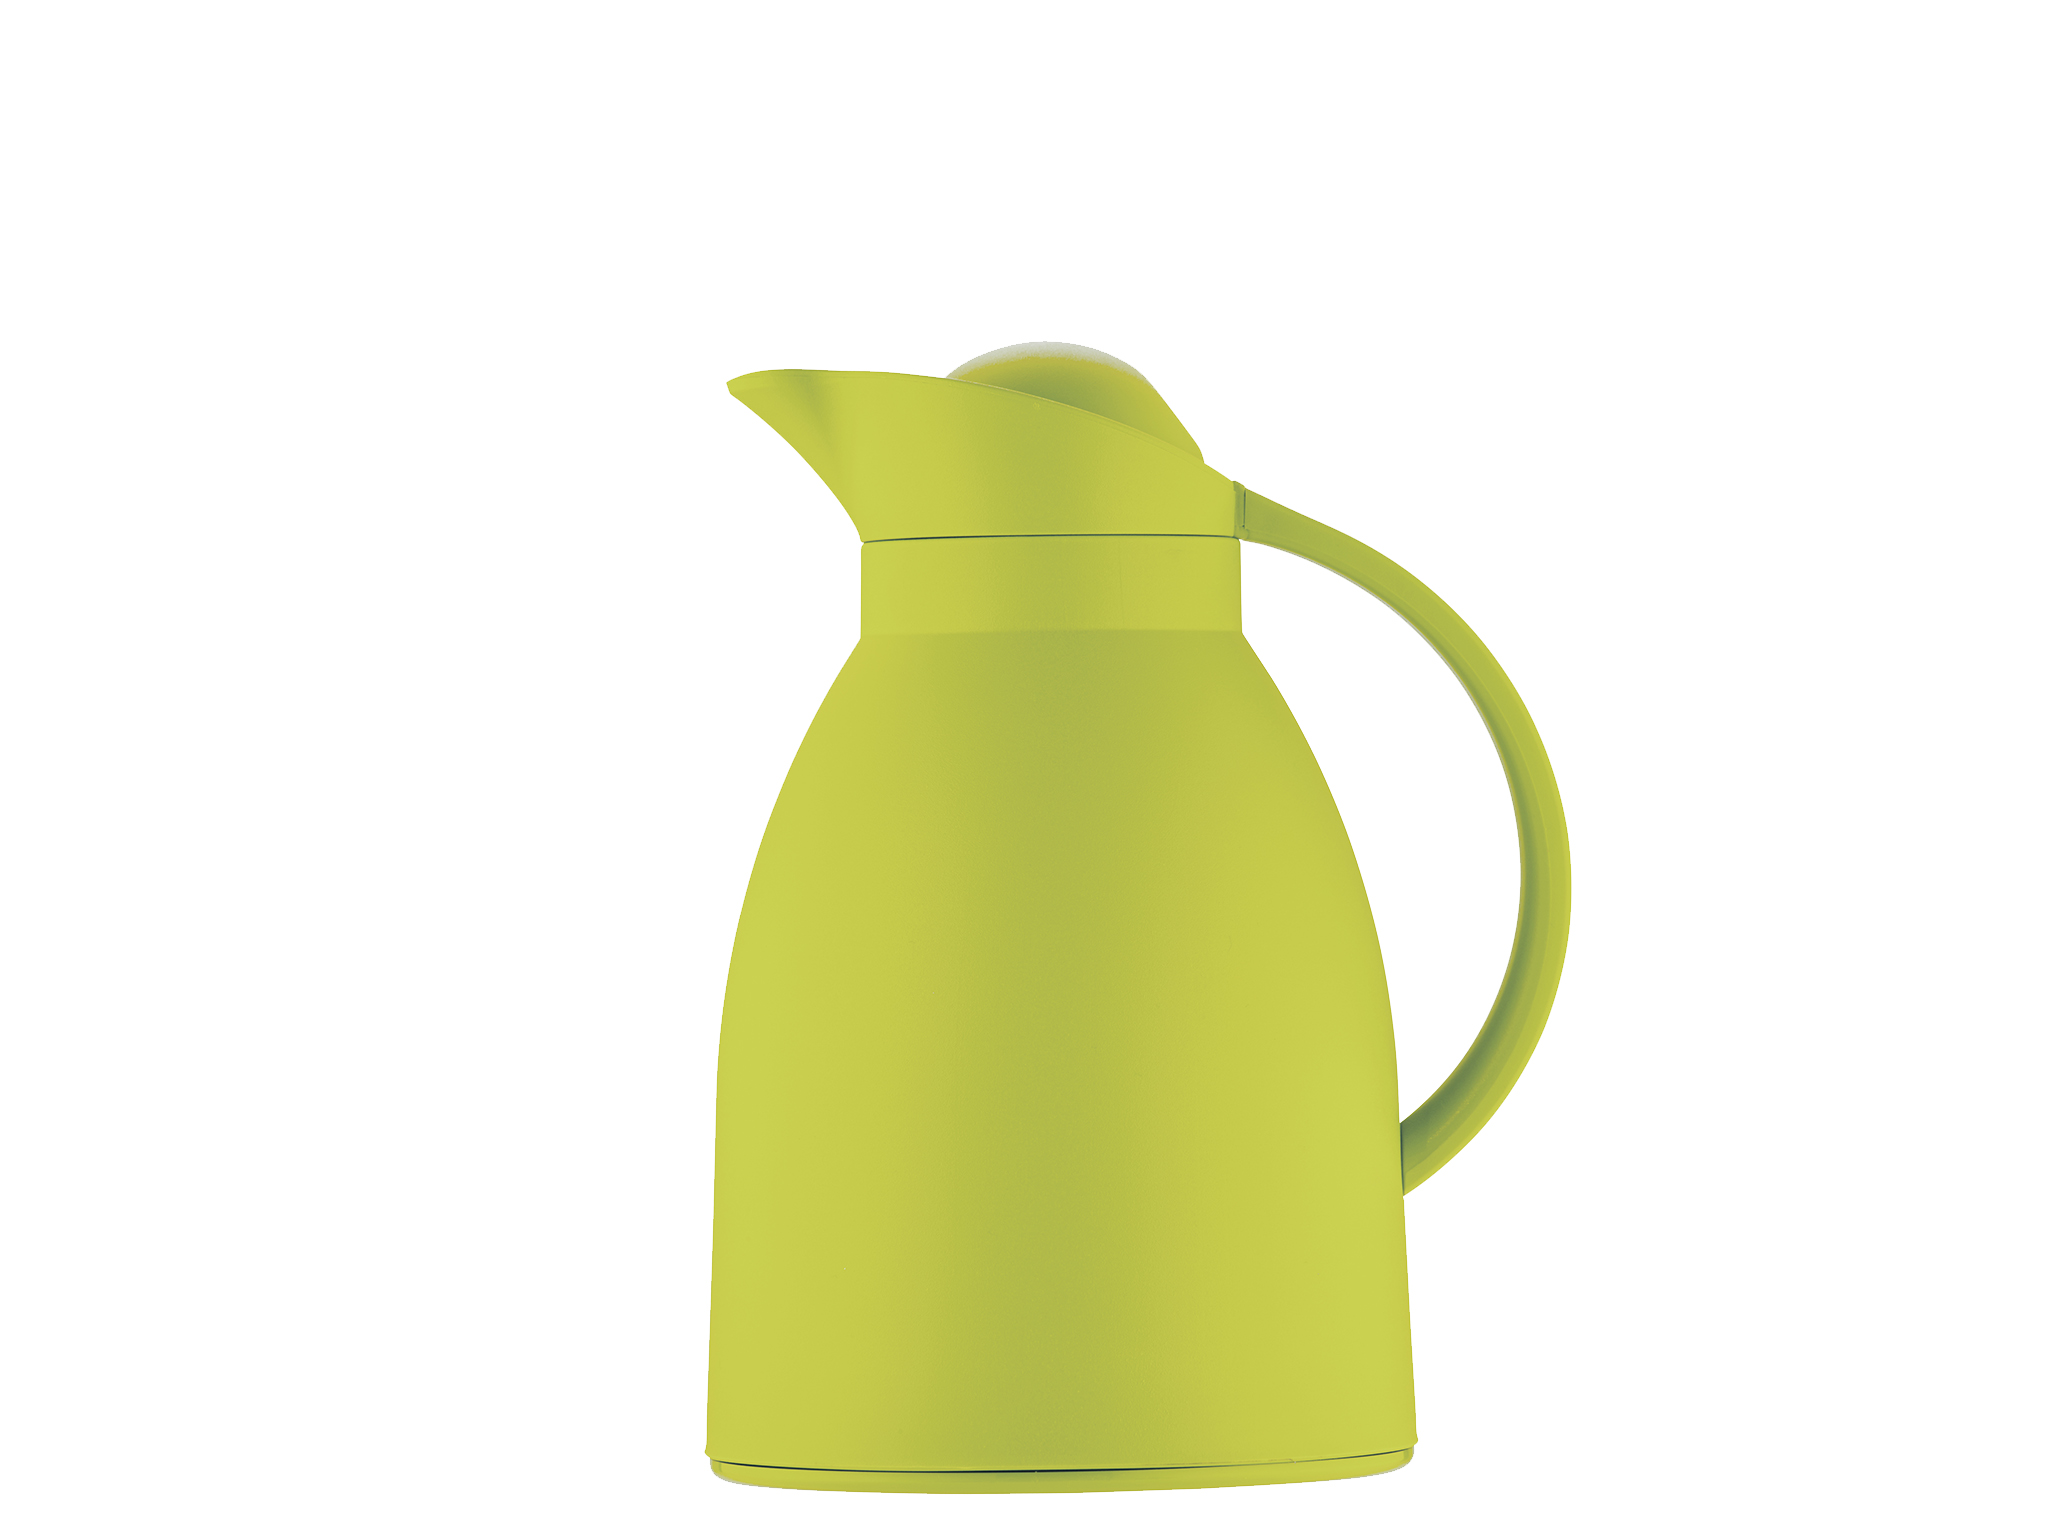 2894-193 - Vacuum jug 1.0 l transparent Lemon Green RIO - Helios